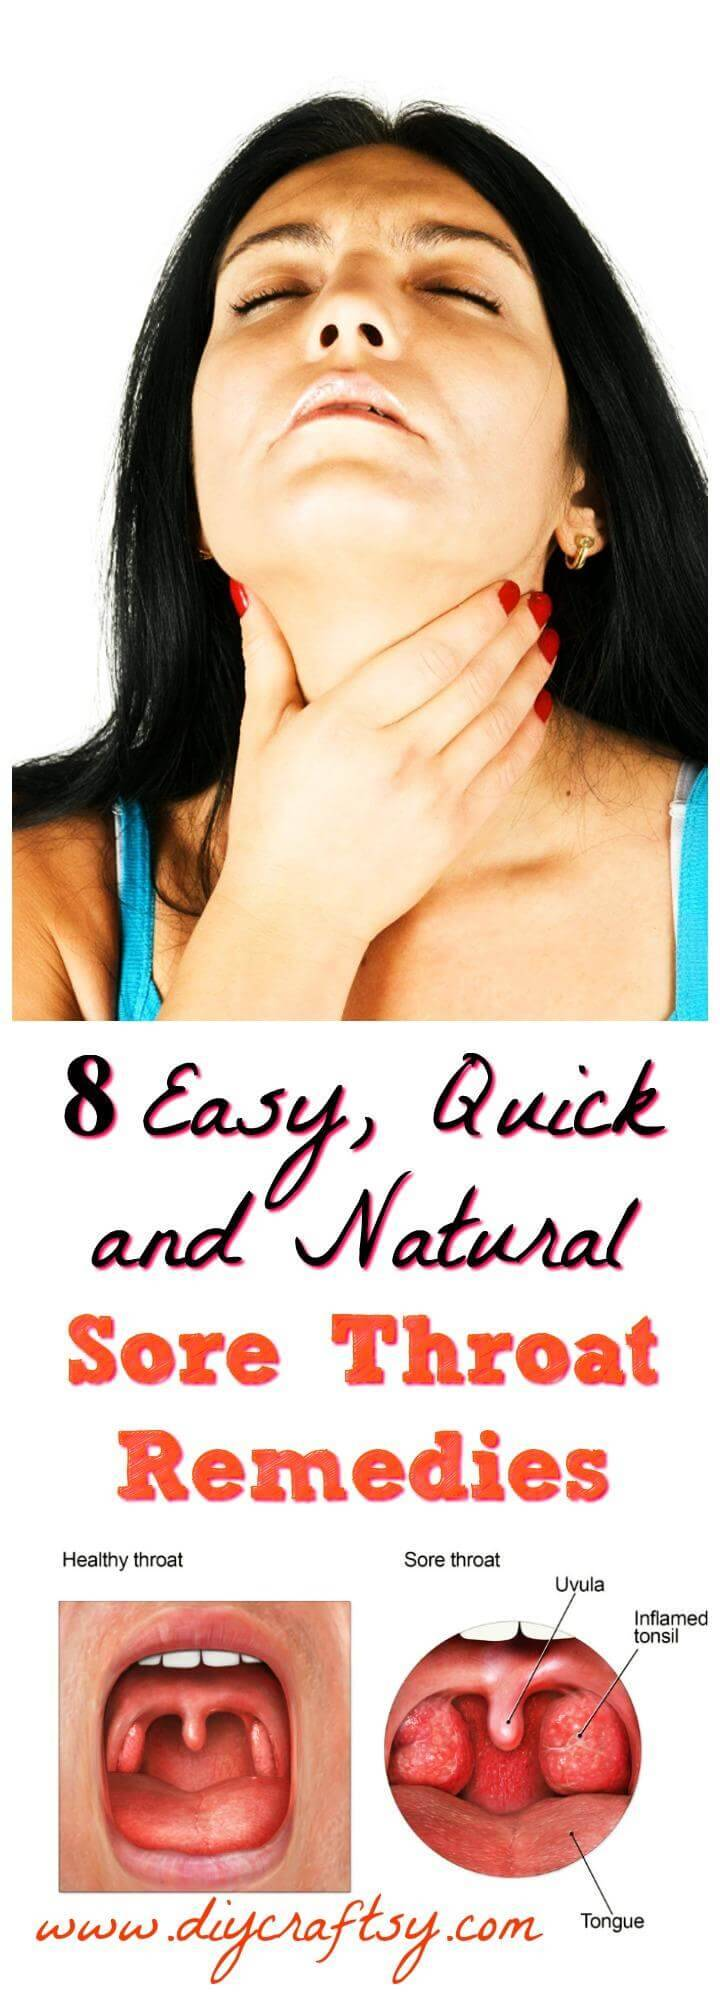 Sore Throat Remedies